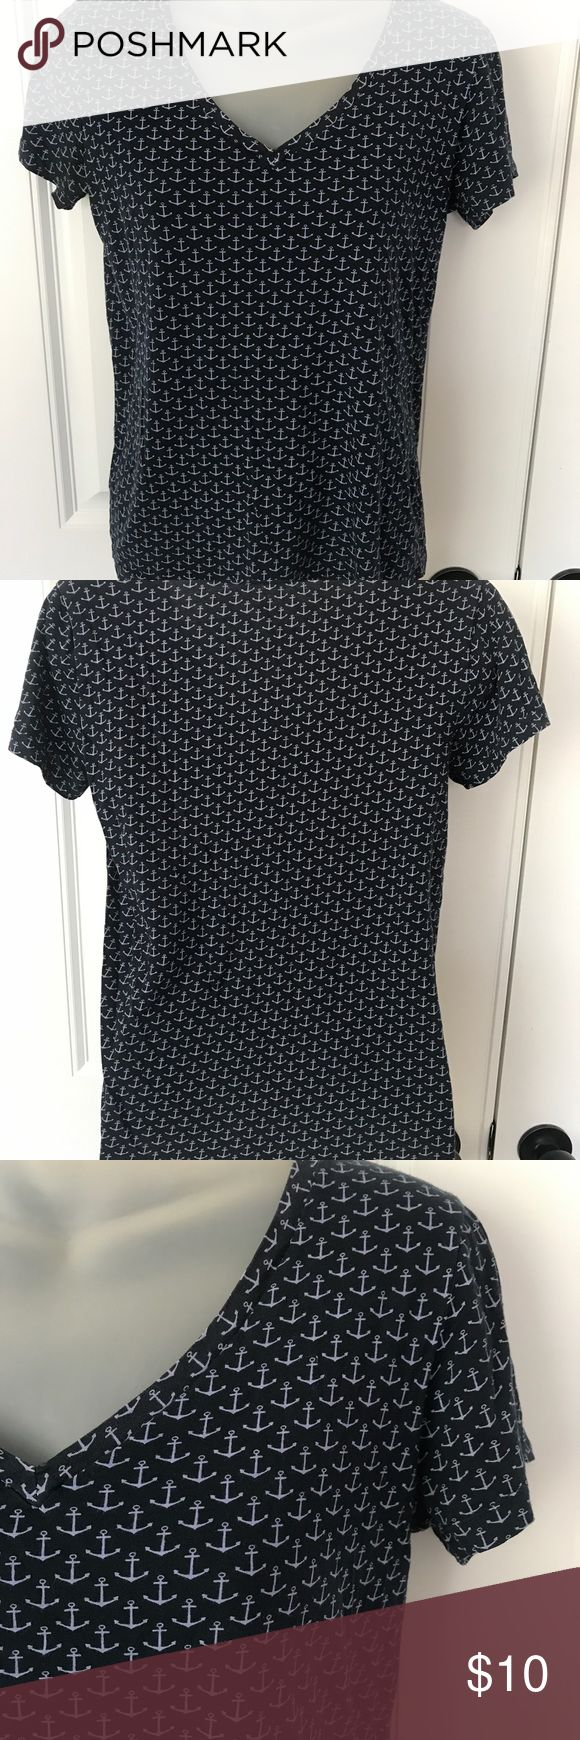 J Crew v-neck t-shirt V-neck Shirt J Crew. Size small. Preowned in good condition. Comes from smoke free and clean home. Thanks J. Crew Tops Tees - Short Sleeve